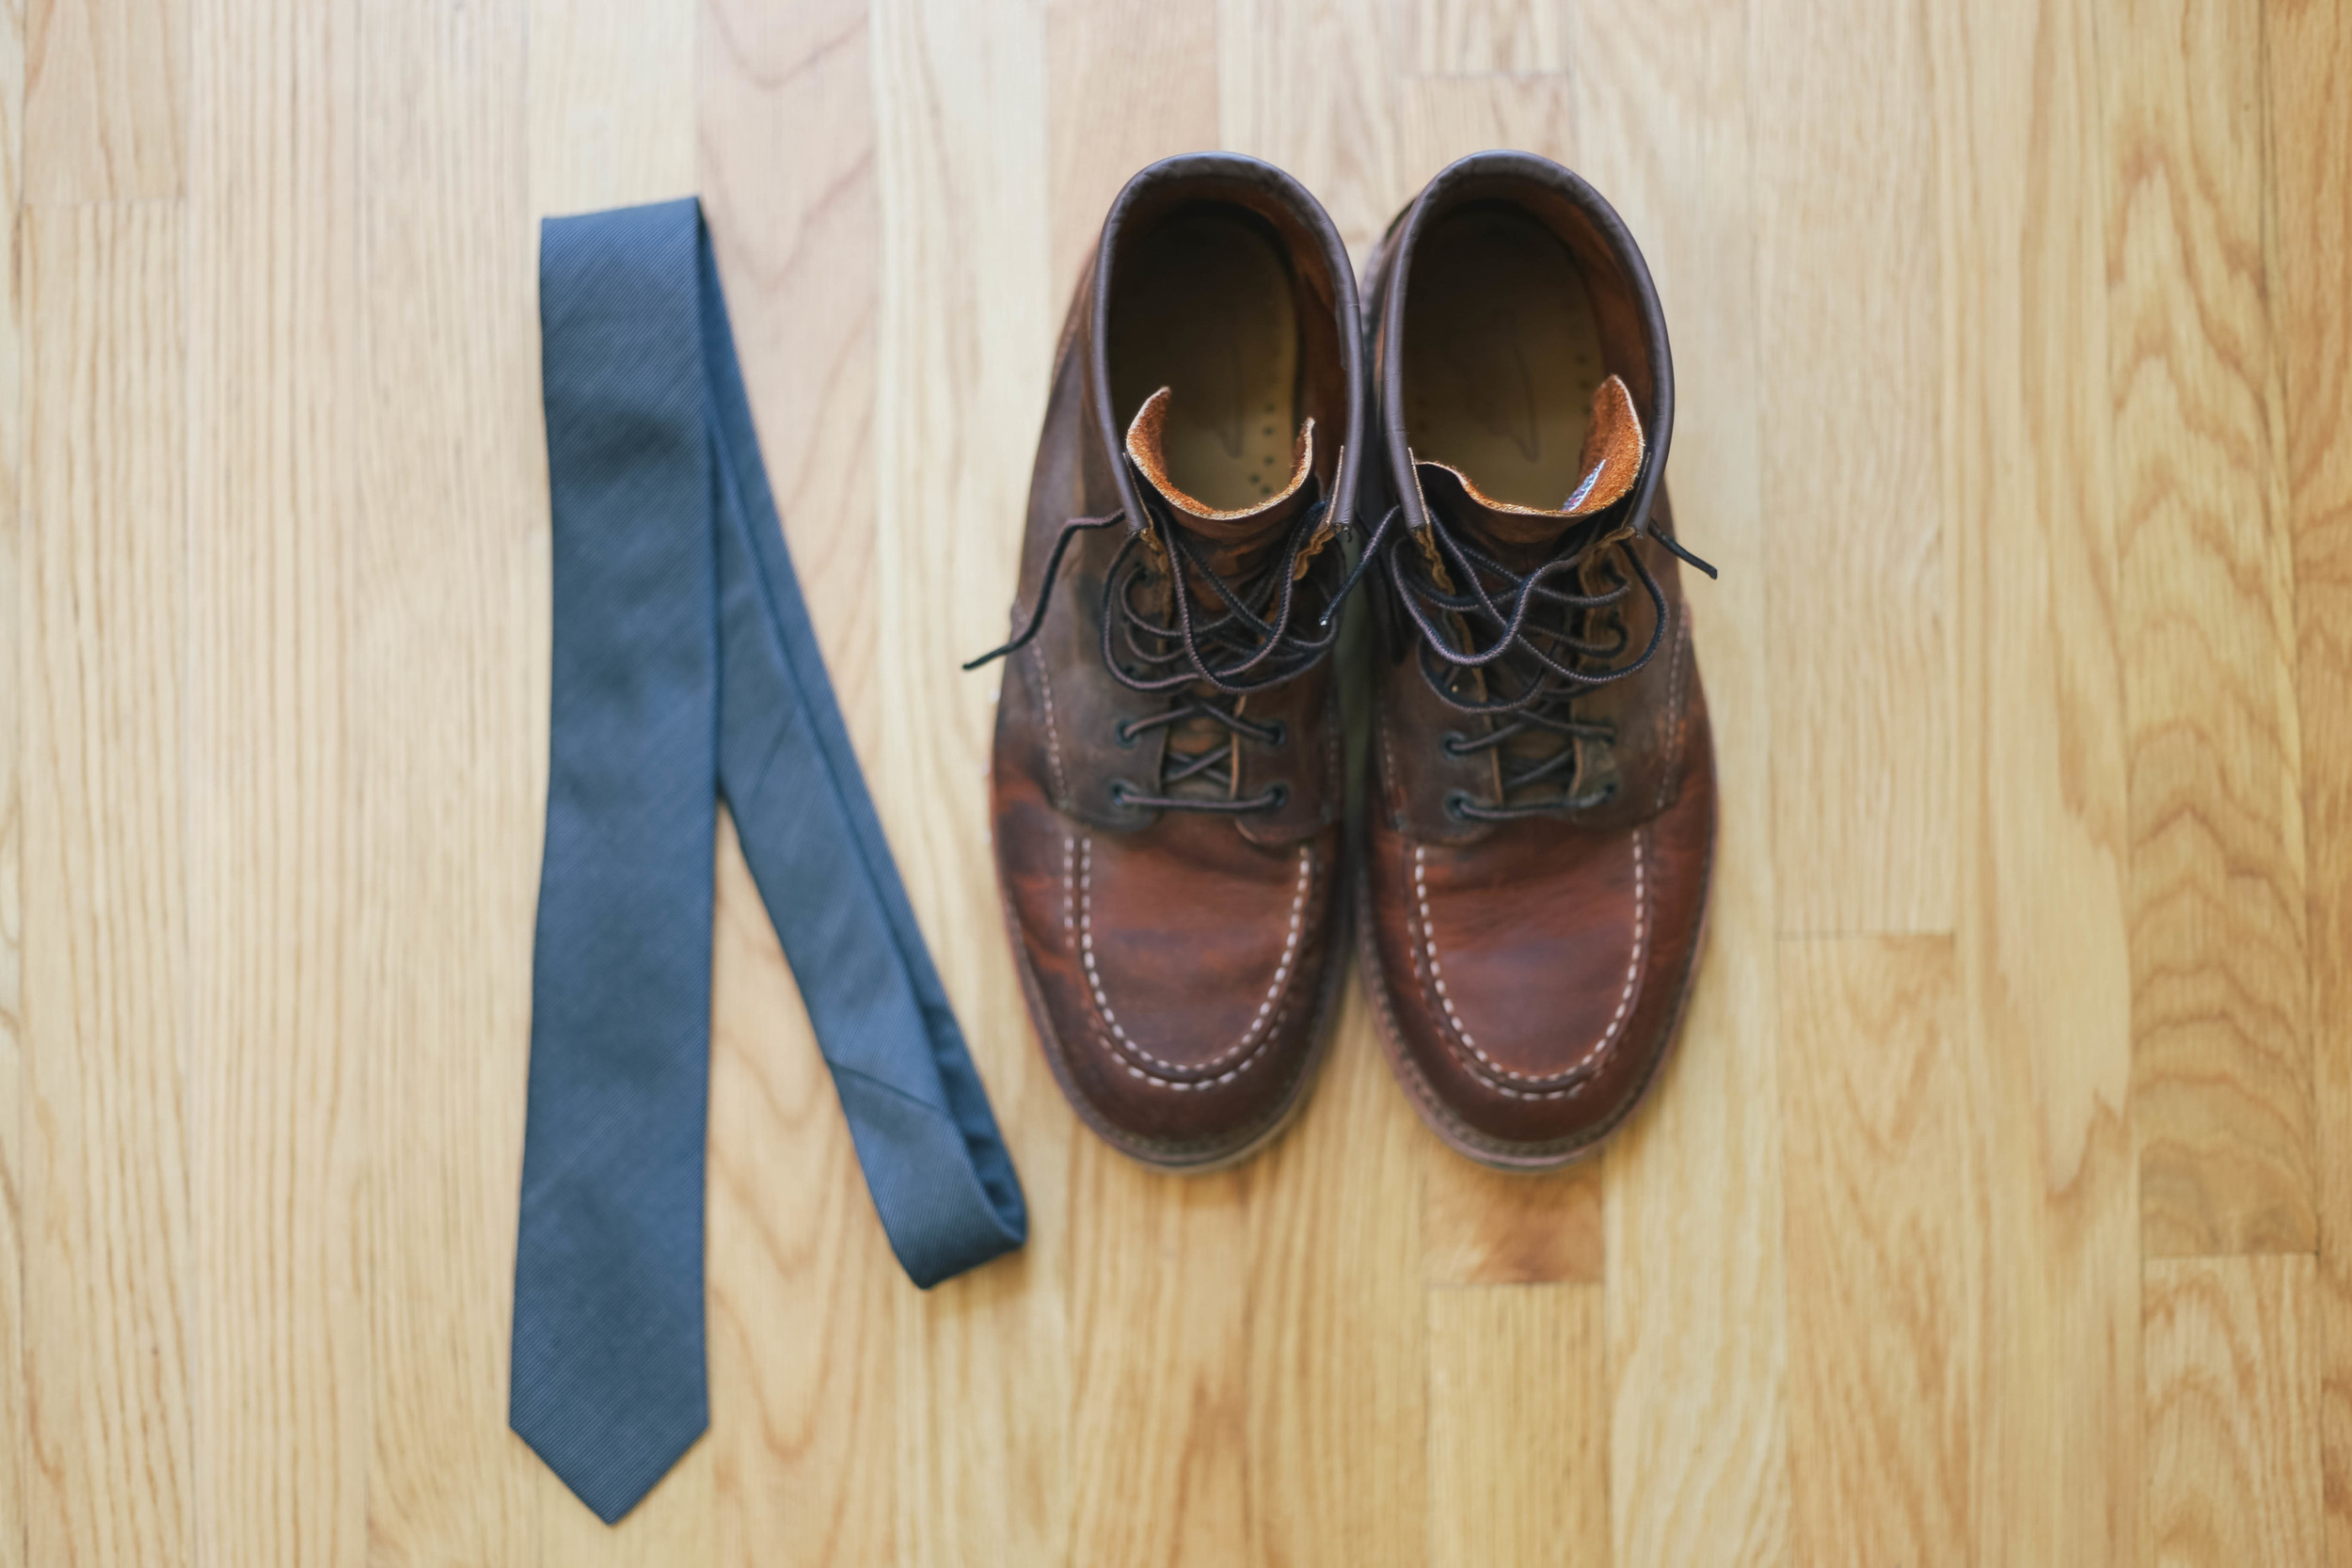 sonoma-county-wedding-photographer-details-backyard-shoes-tie-groom